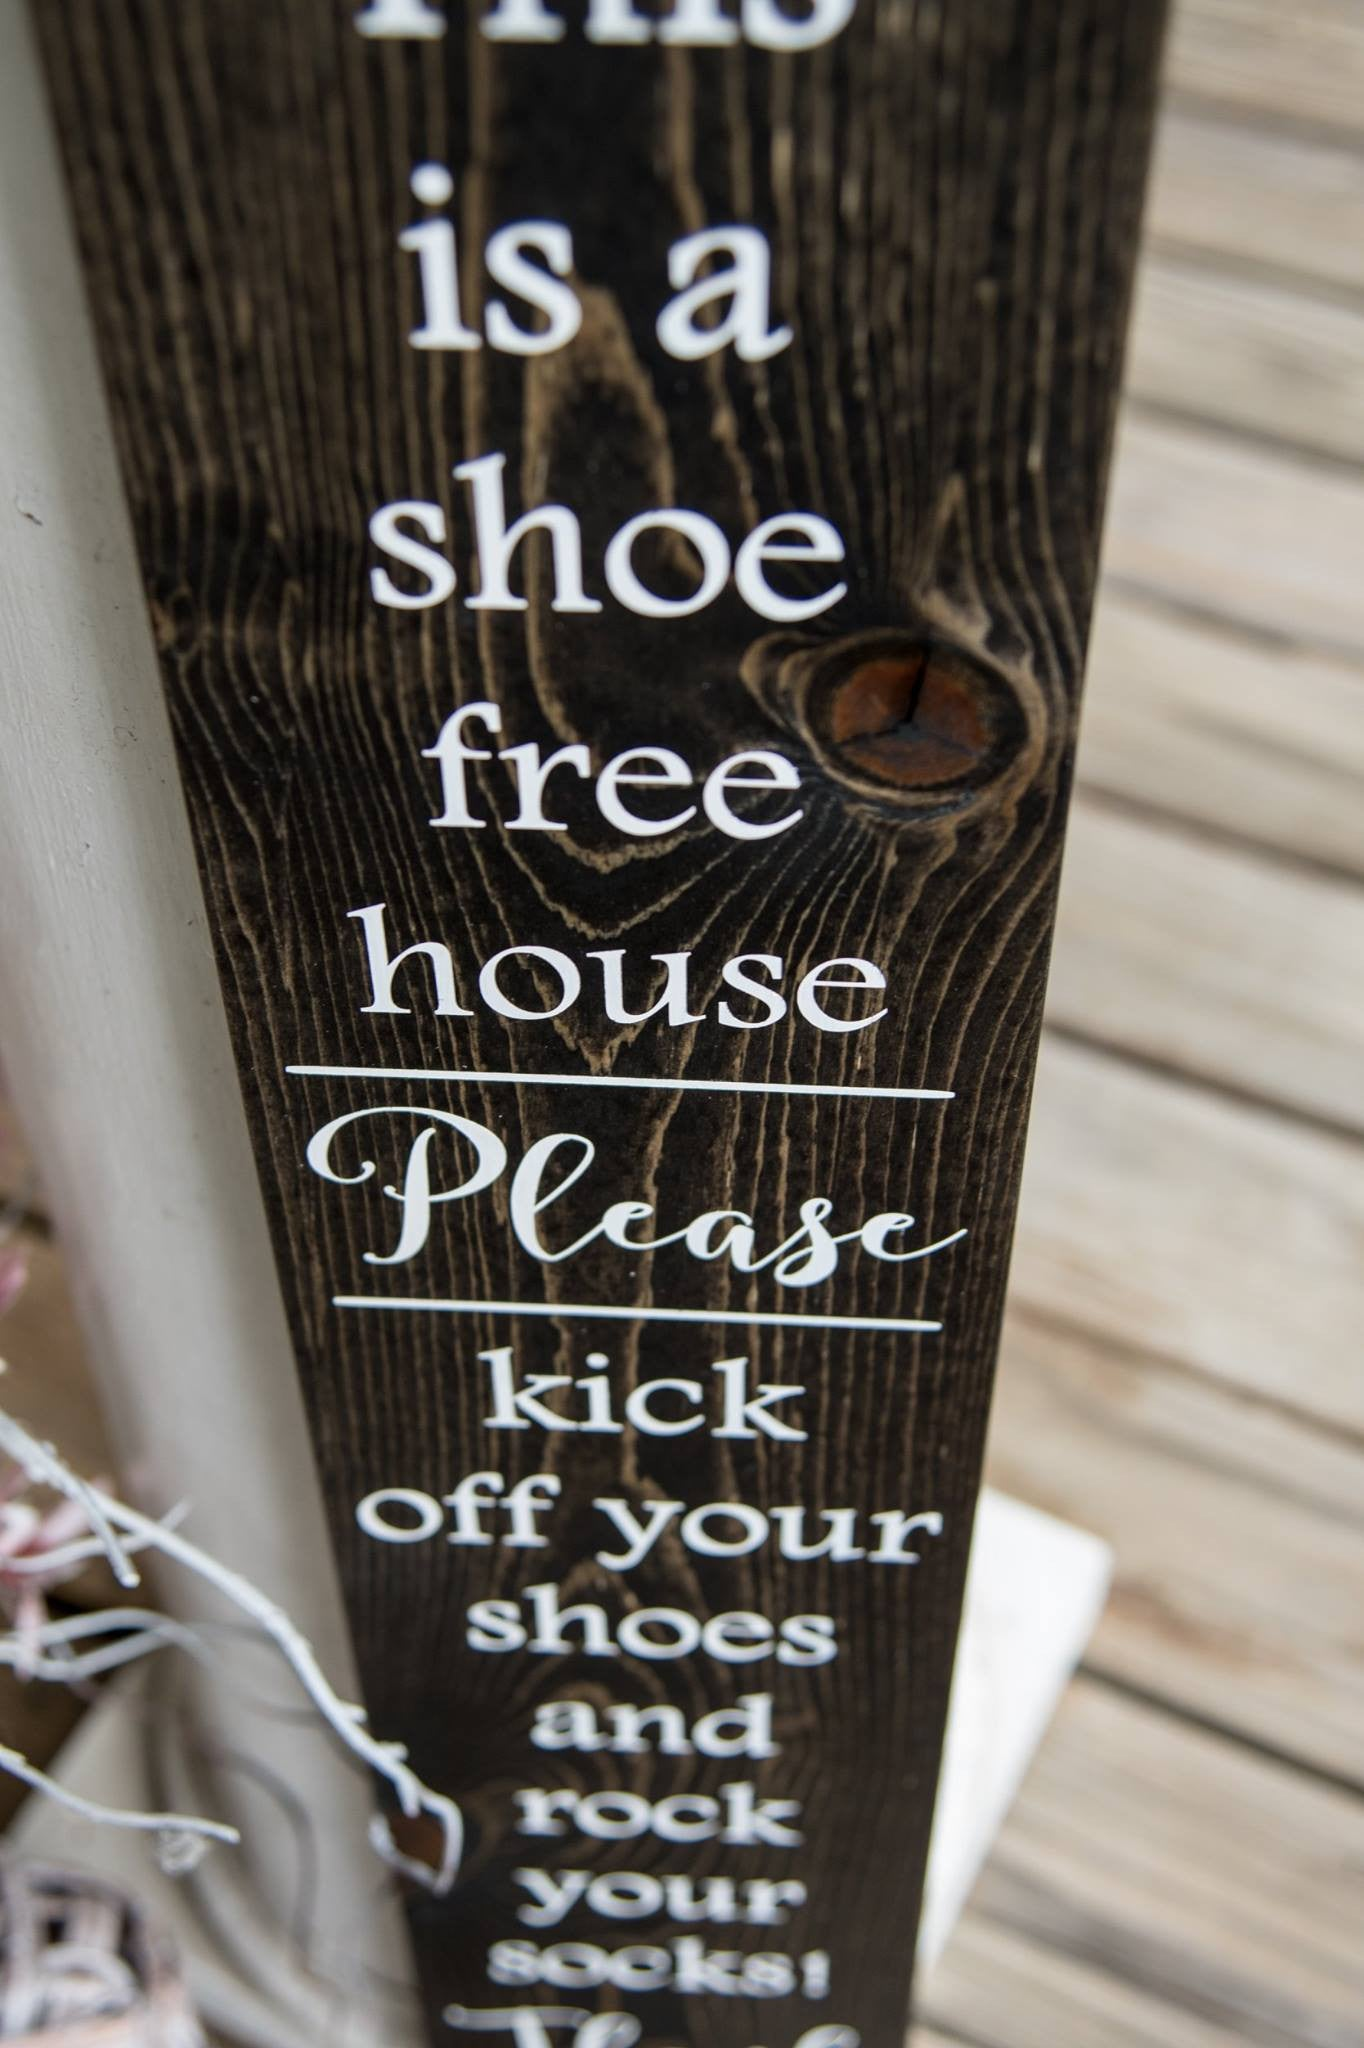 graphic relating to Please Remove Your Shoes Sign Printable Free named Free of charge Shipping and delivery!!! Rock your socks wooden indication I No sneakers I